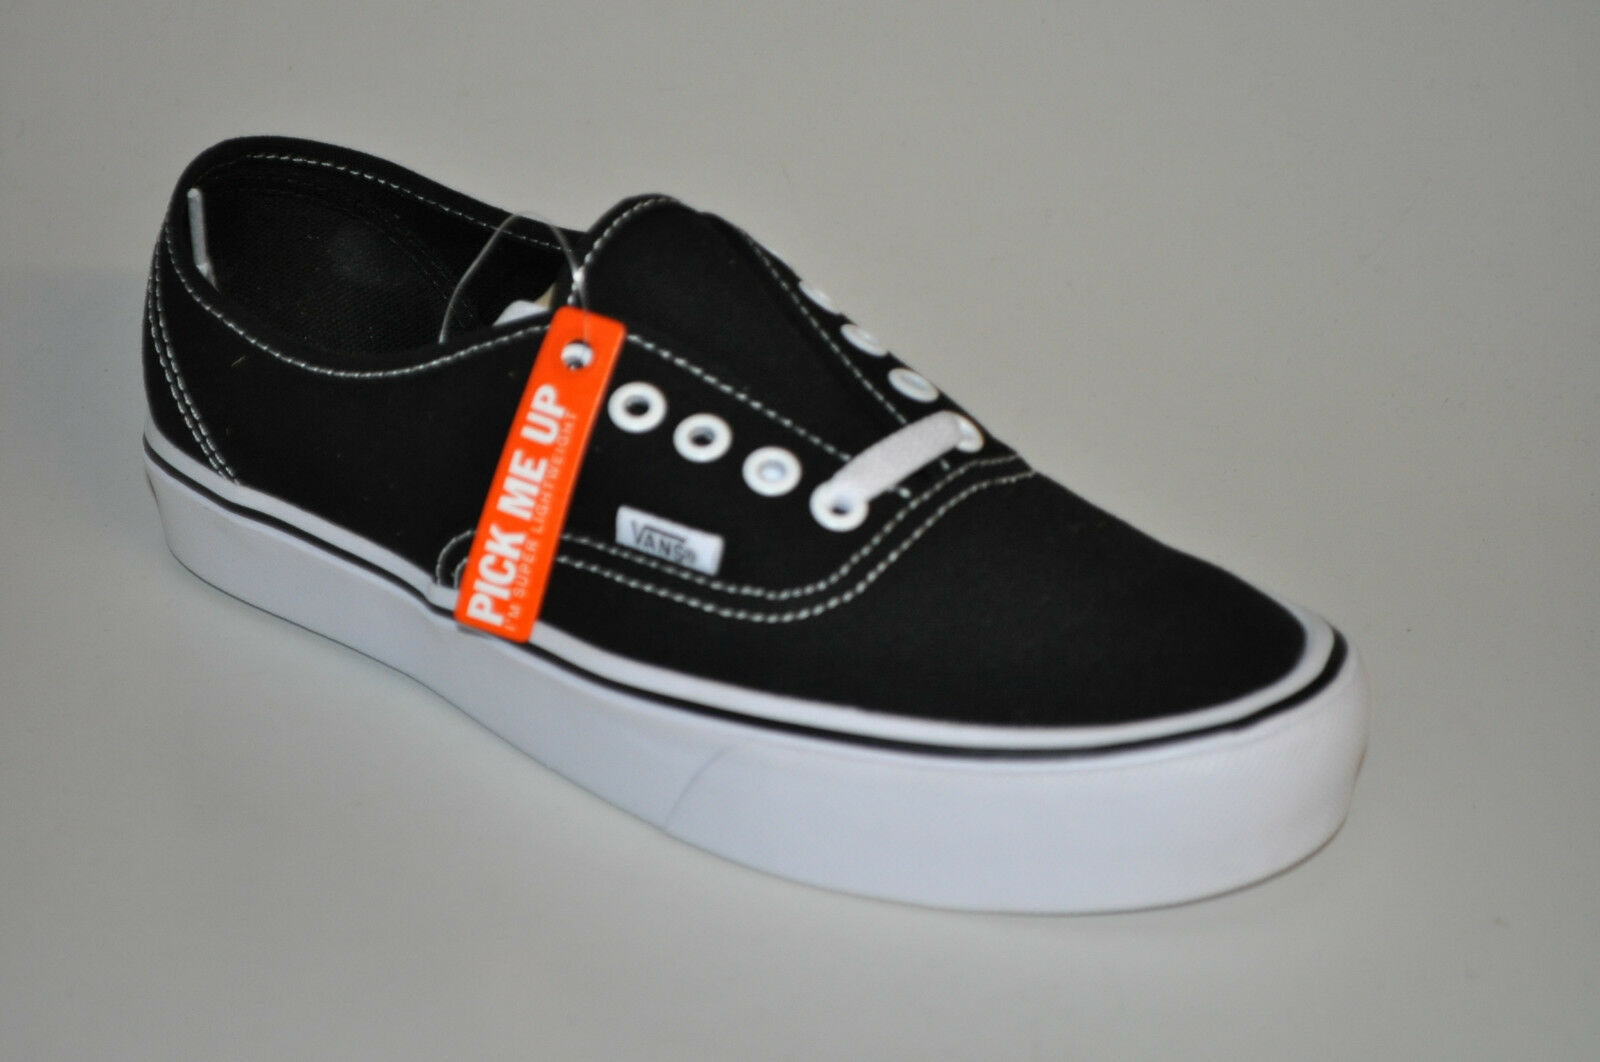 Vans Authentic Lite Canvas vn0a2z5j187 noir blanc noir blanc